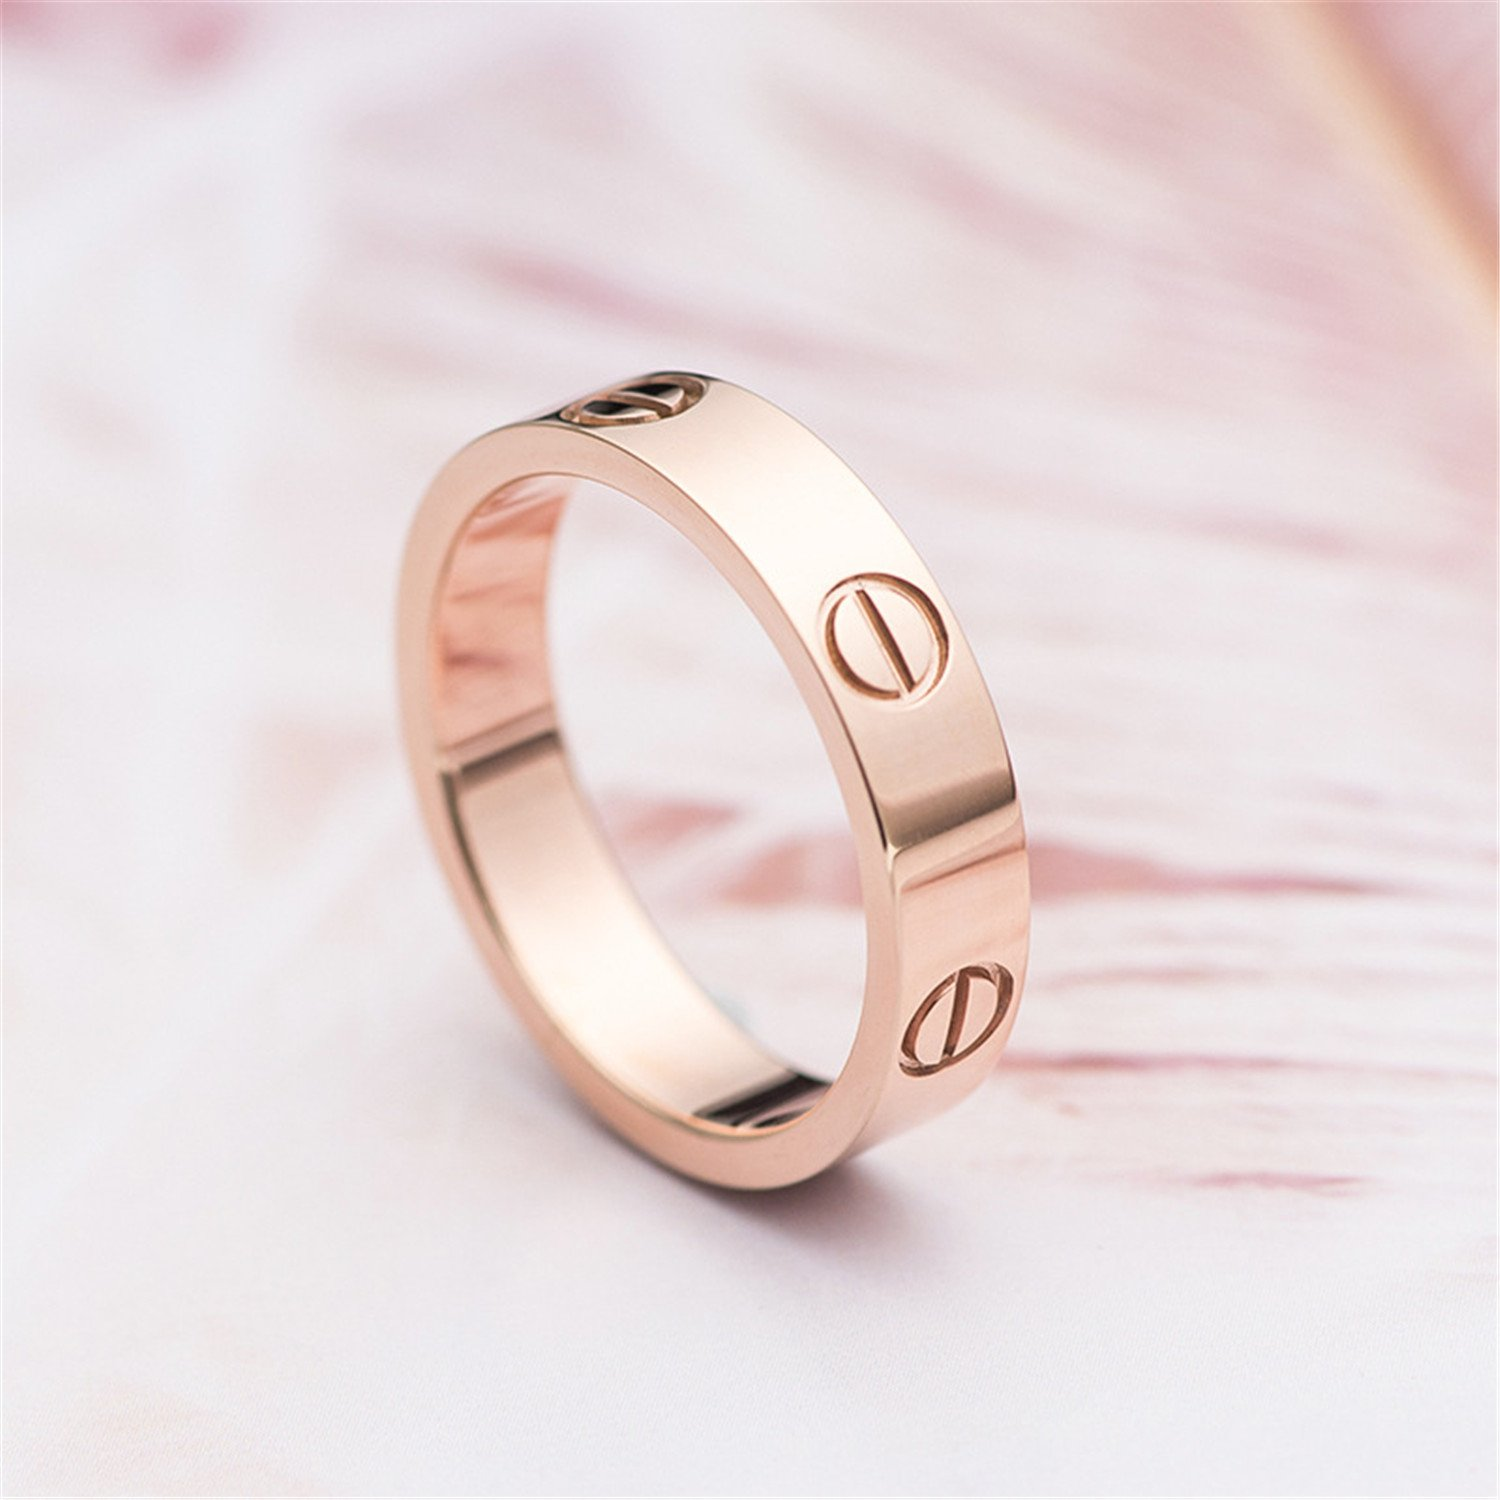 BESTJEW Rose Gold Love Screw Ring Engagement Wedding Couples Band Titanium Stainless Steel Size 9 by BESTJEW (Image #2)